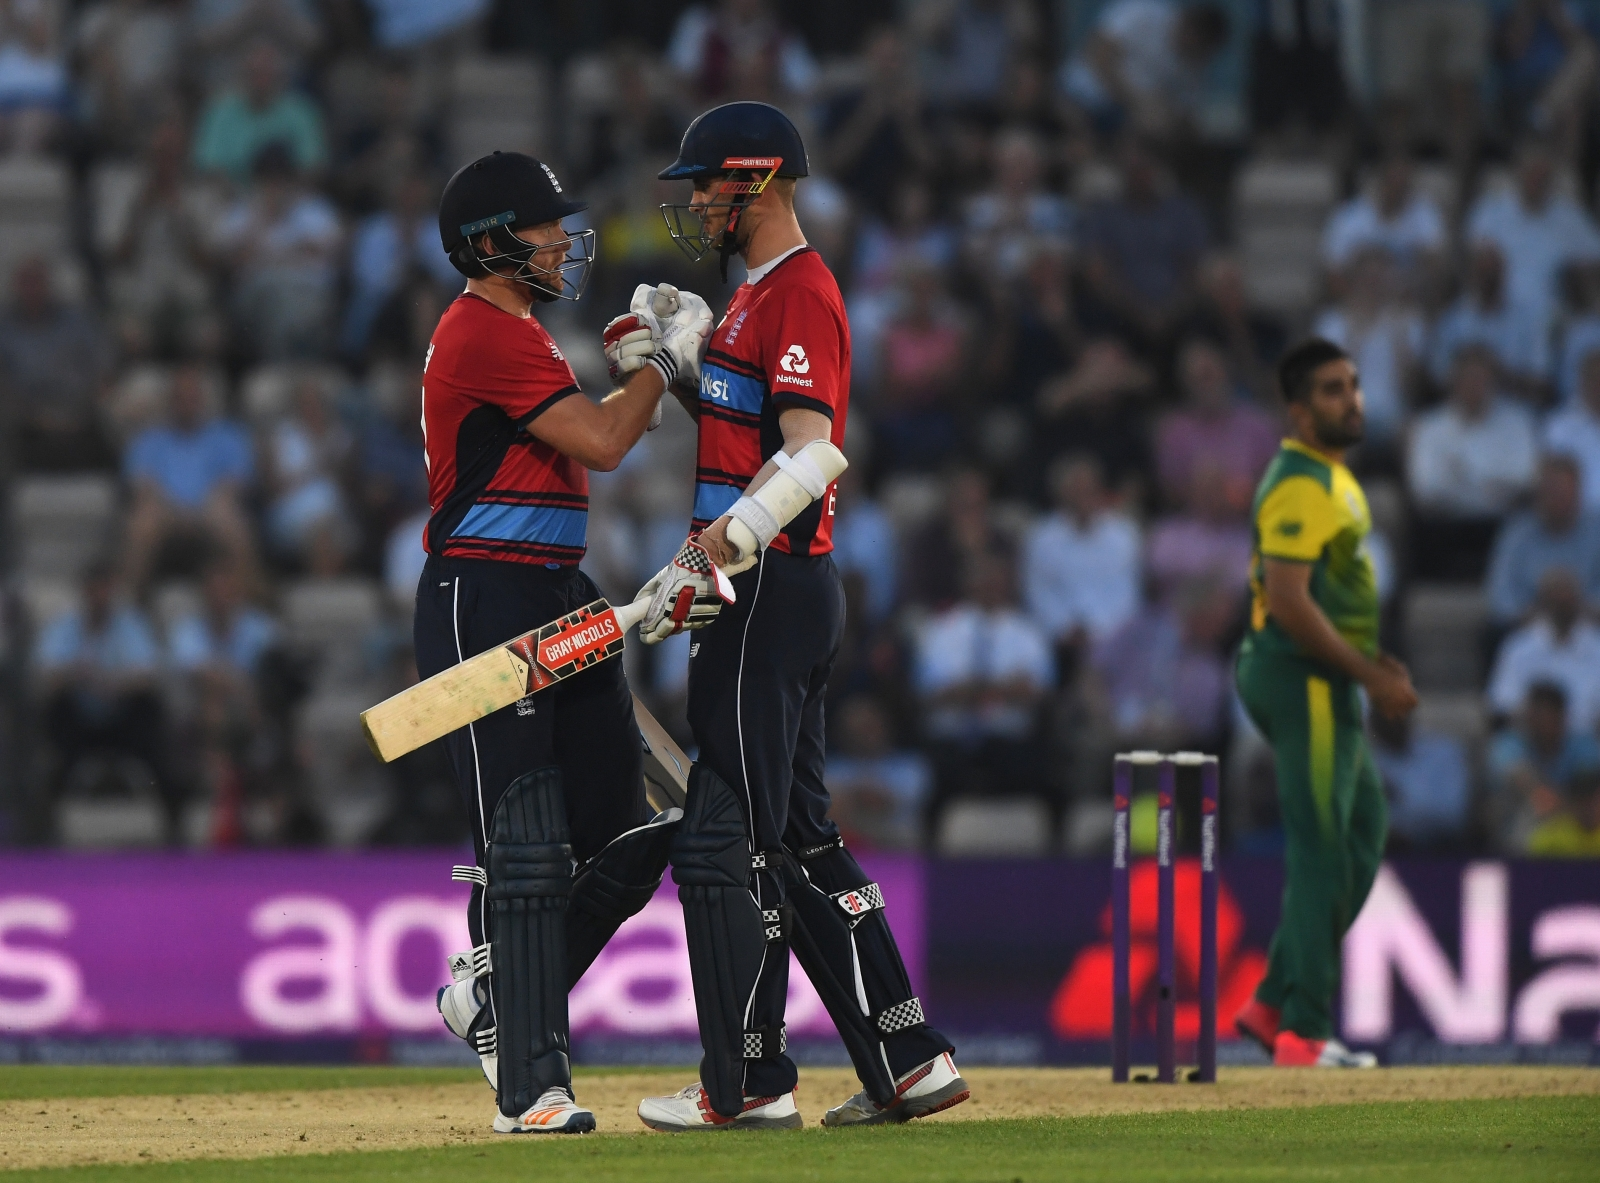 Alex Hales and Jonny Bairstow